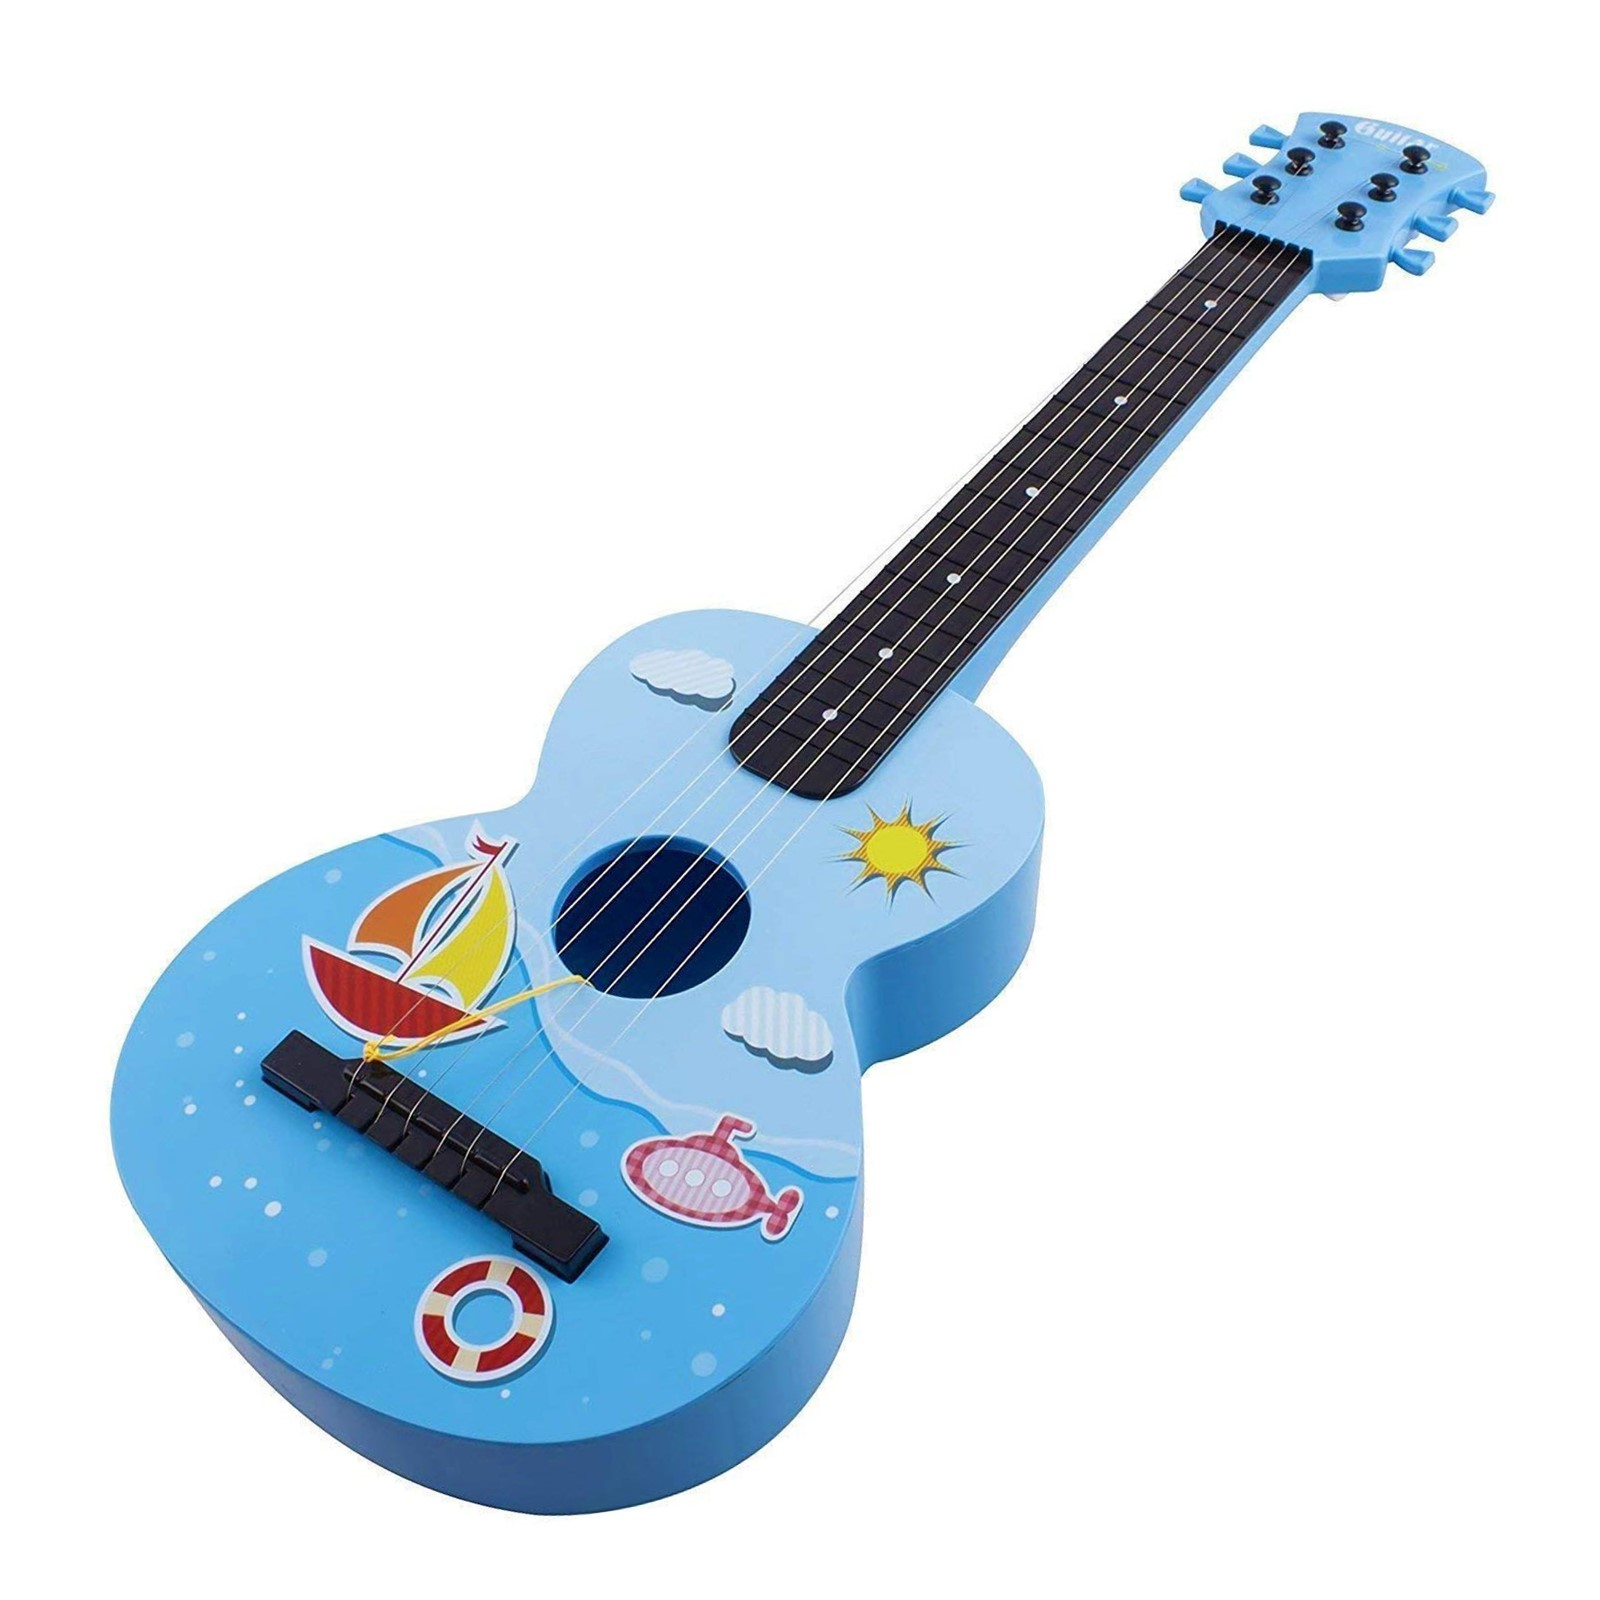 Toy Guitar Rock Star 6 String Acoustic Kids Ukulele With Guitar Pick Children\'s Musical Instrument Vibrant Sound And Colors Tunable Strings Educational And Perfect For Learning How To Play Blue